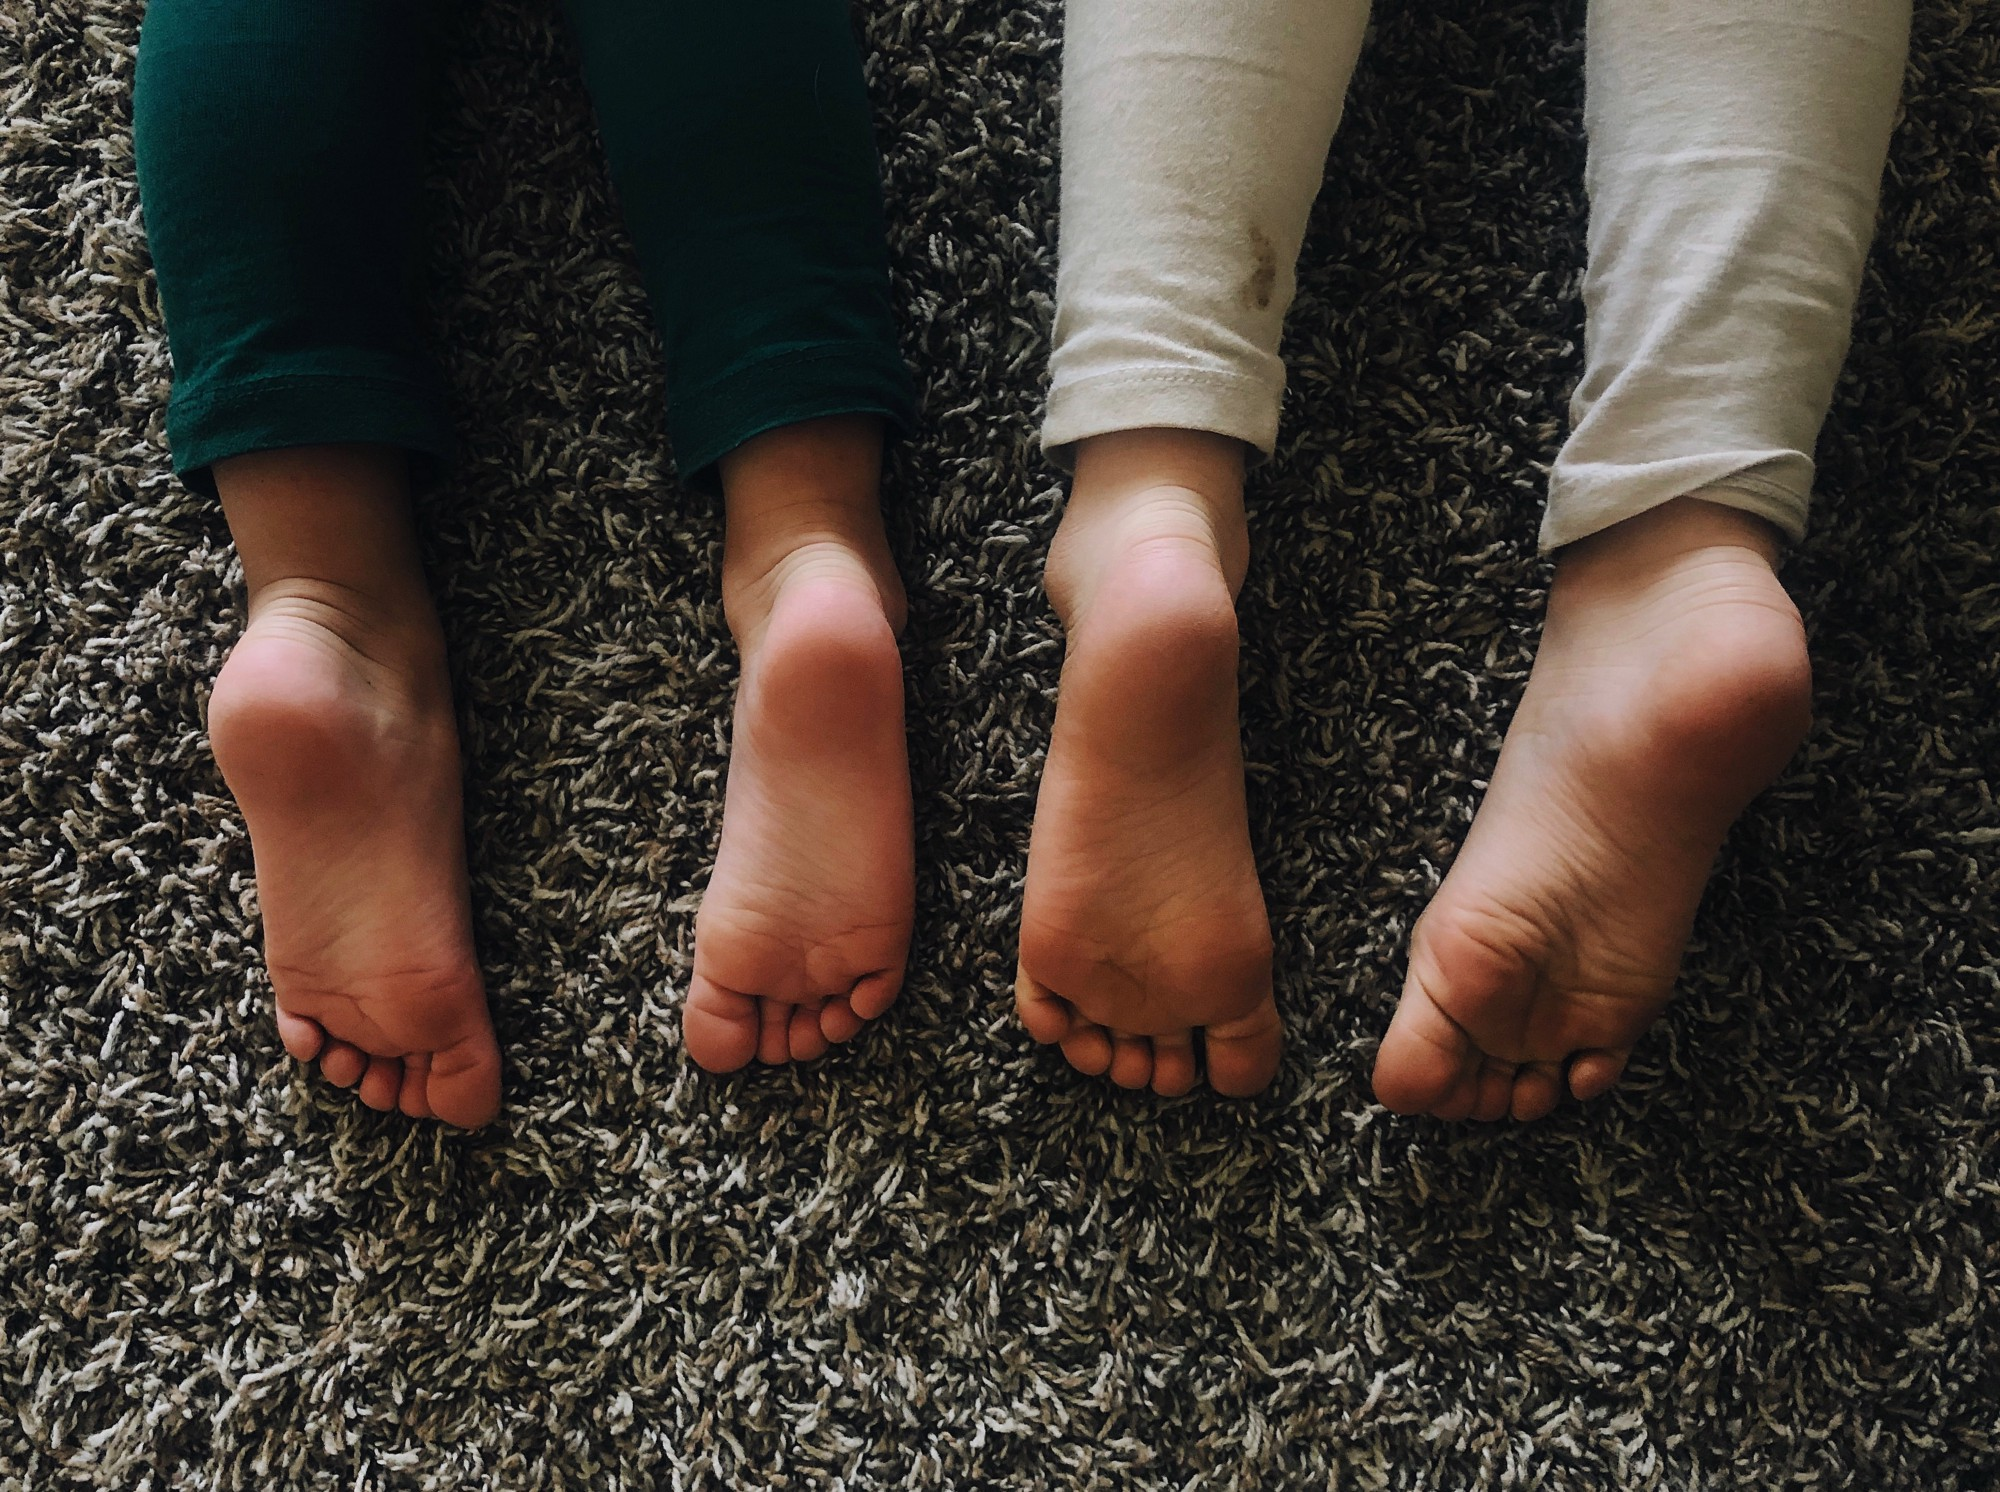 My daughter's bare feet on our living room floor.